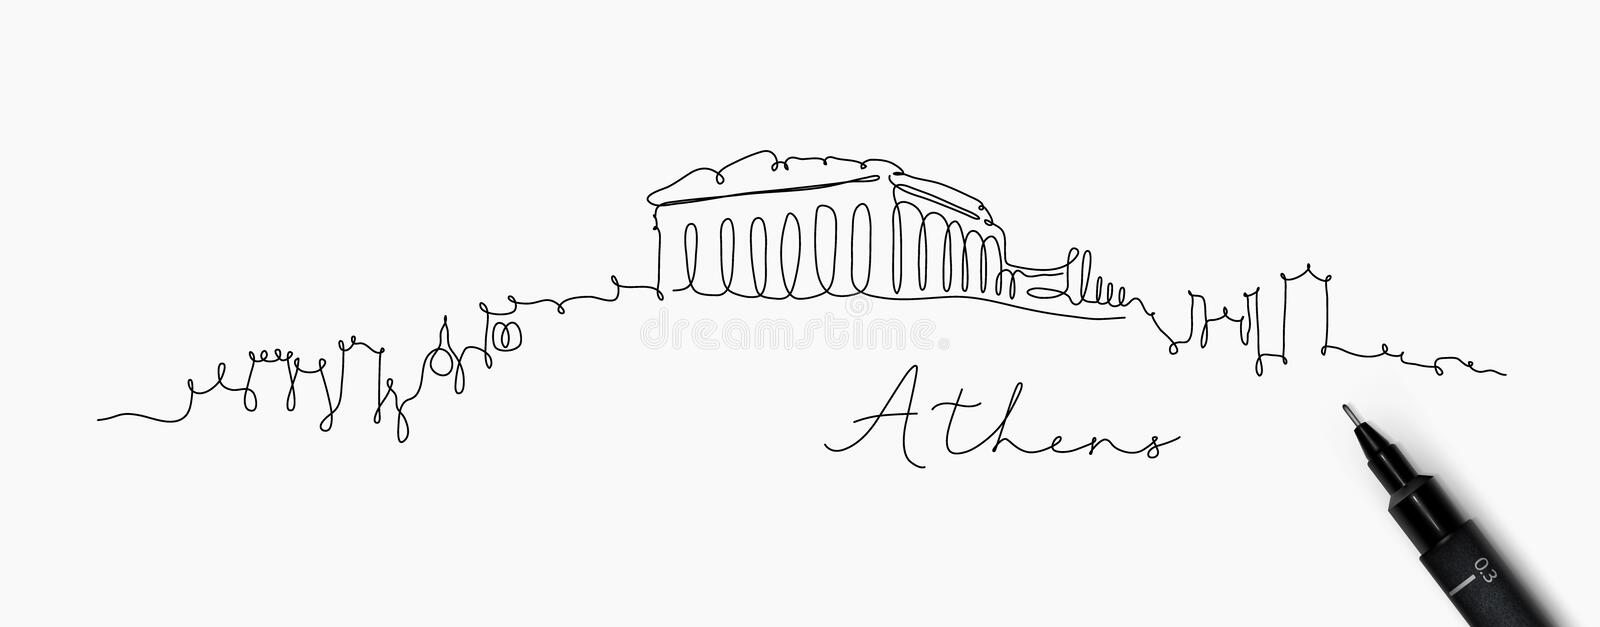 Pen line silhouette athens. City silhouette athens in pen line style drawing with black lines on white background royalty free illustration